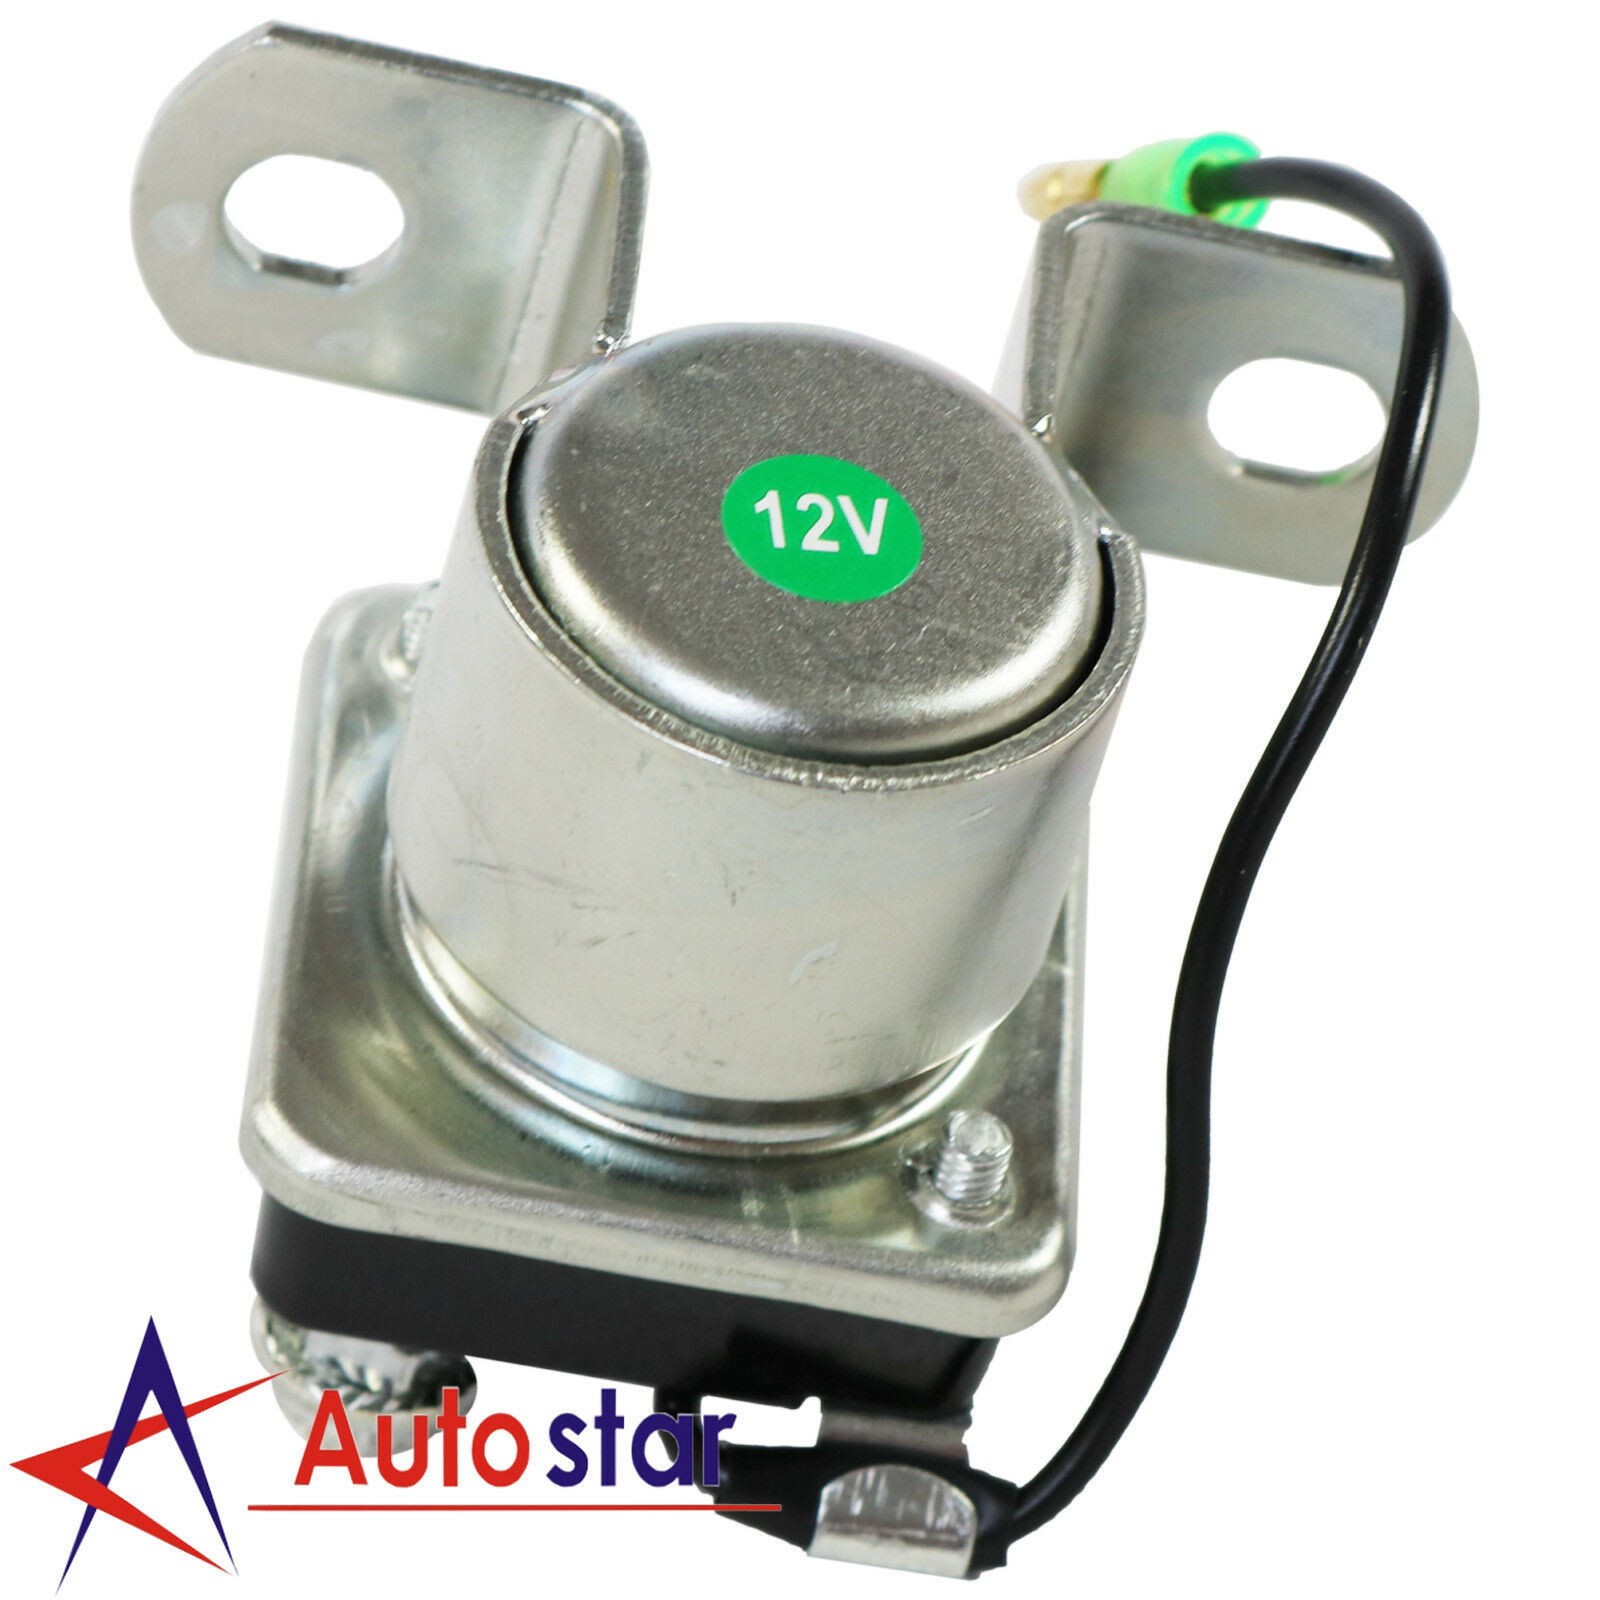 Starter Relay Solenoid For Polaris Sportsman 335 99-00 Sportsman 400 2001-2004